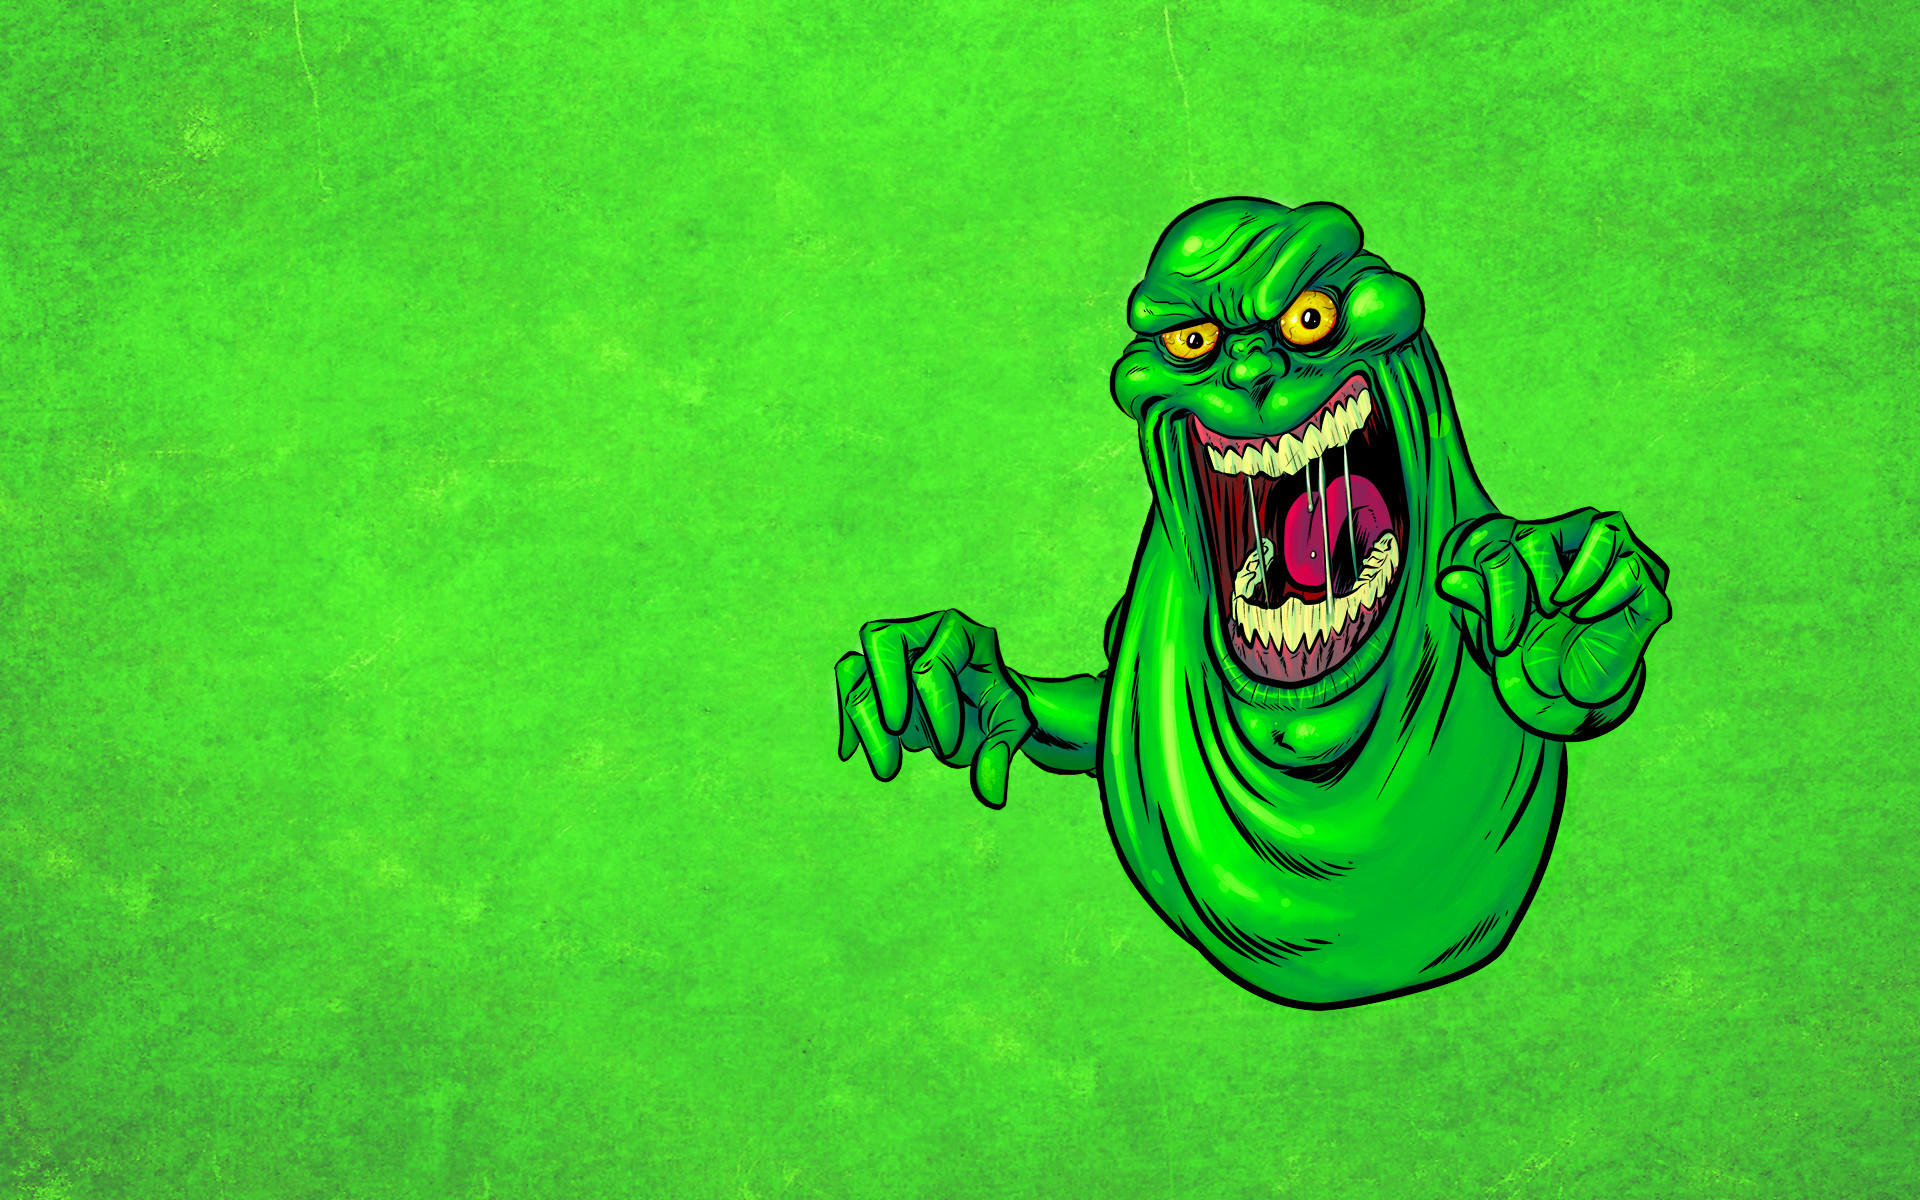 1920x1200 Related Wallpapers from Silver Surfer Wallpaper. Slimer ghostbusters